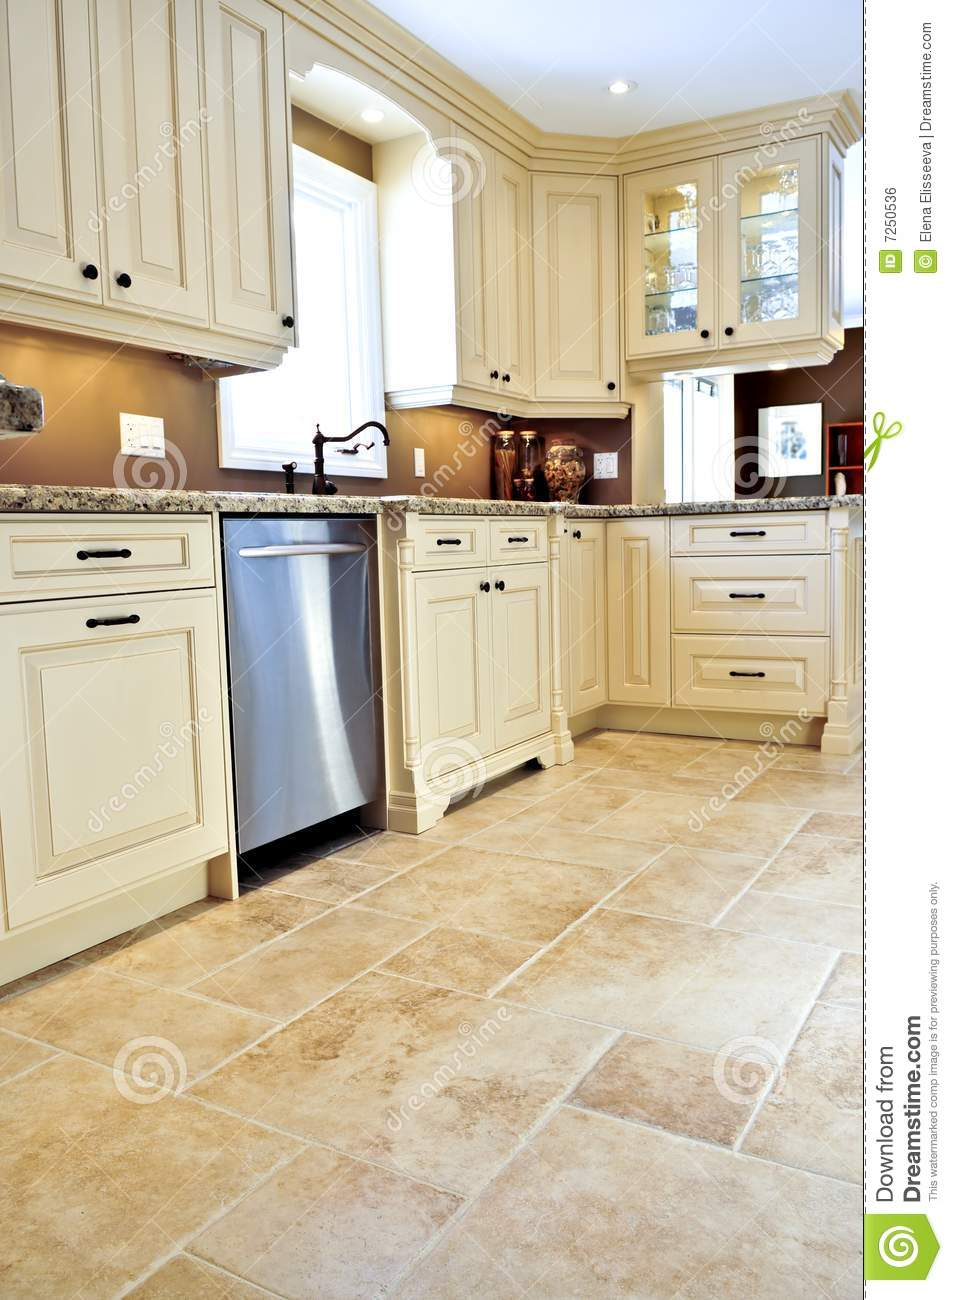 For Kitchen Floor Tile Floor In Modern Kitchen Royalty Free Stock Image Image 7250536